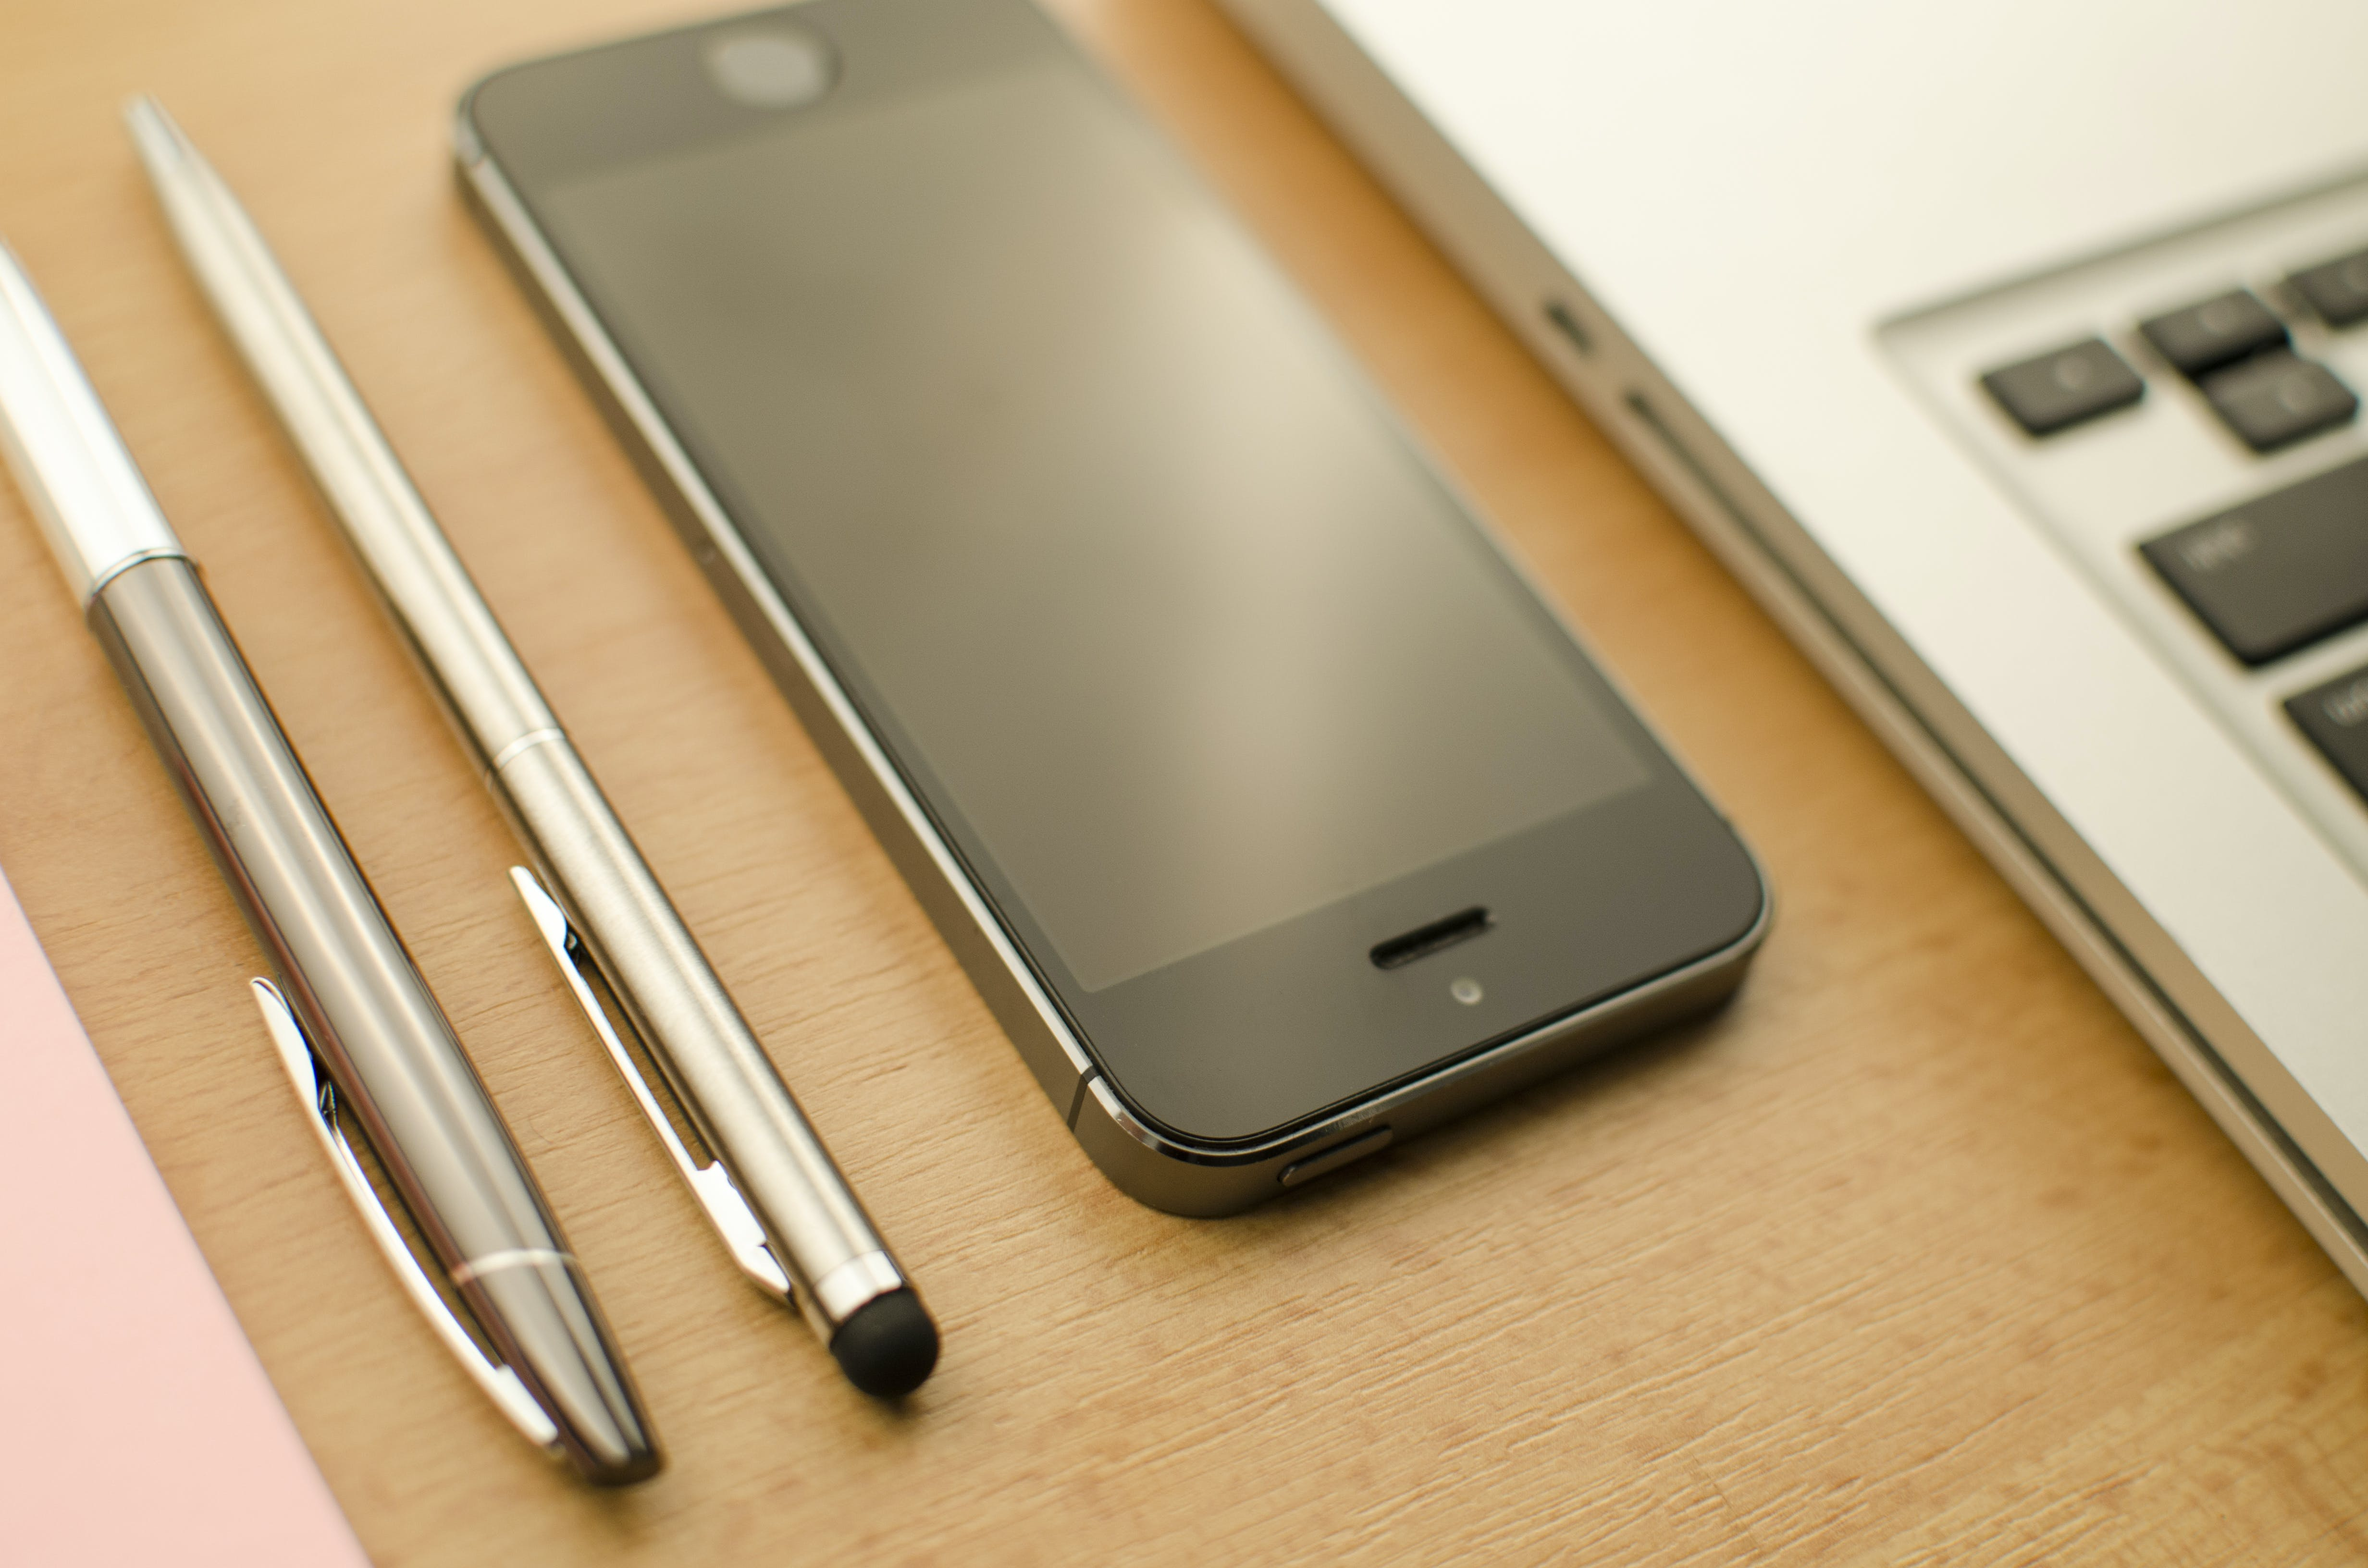 Space Gray Iphone 5s Beside Two Retractable Pens and Macbook